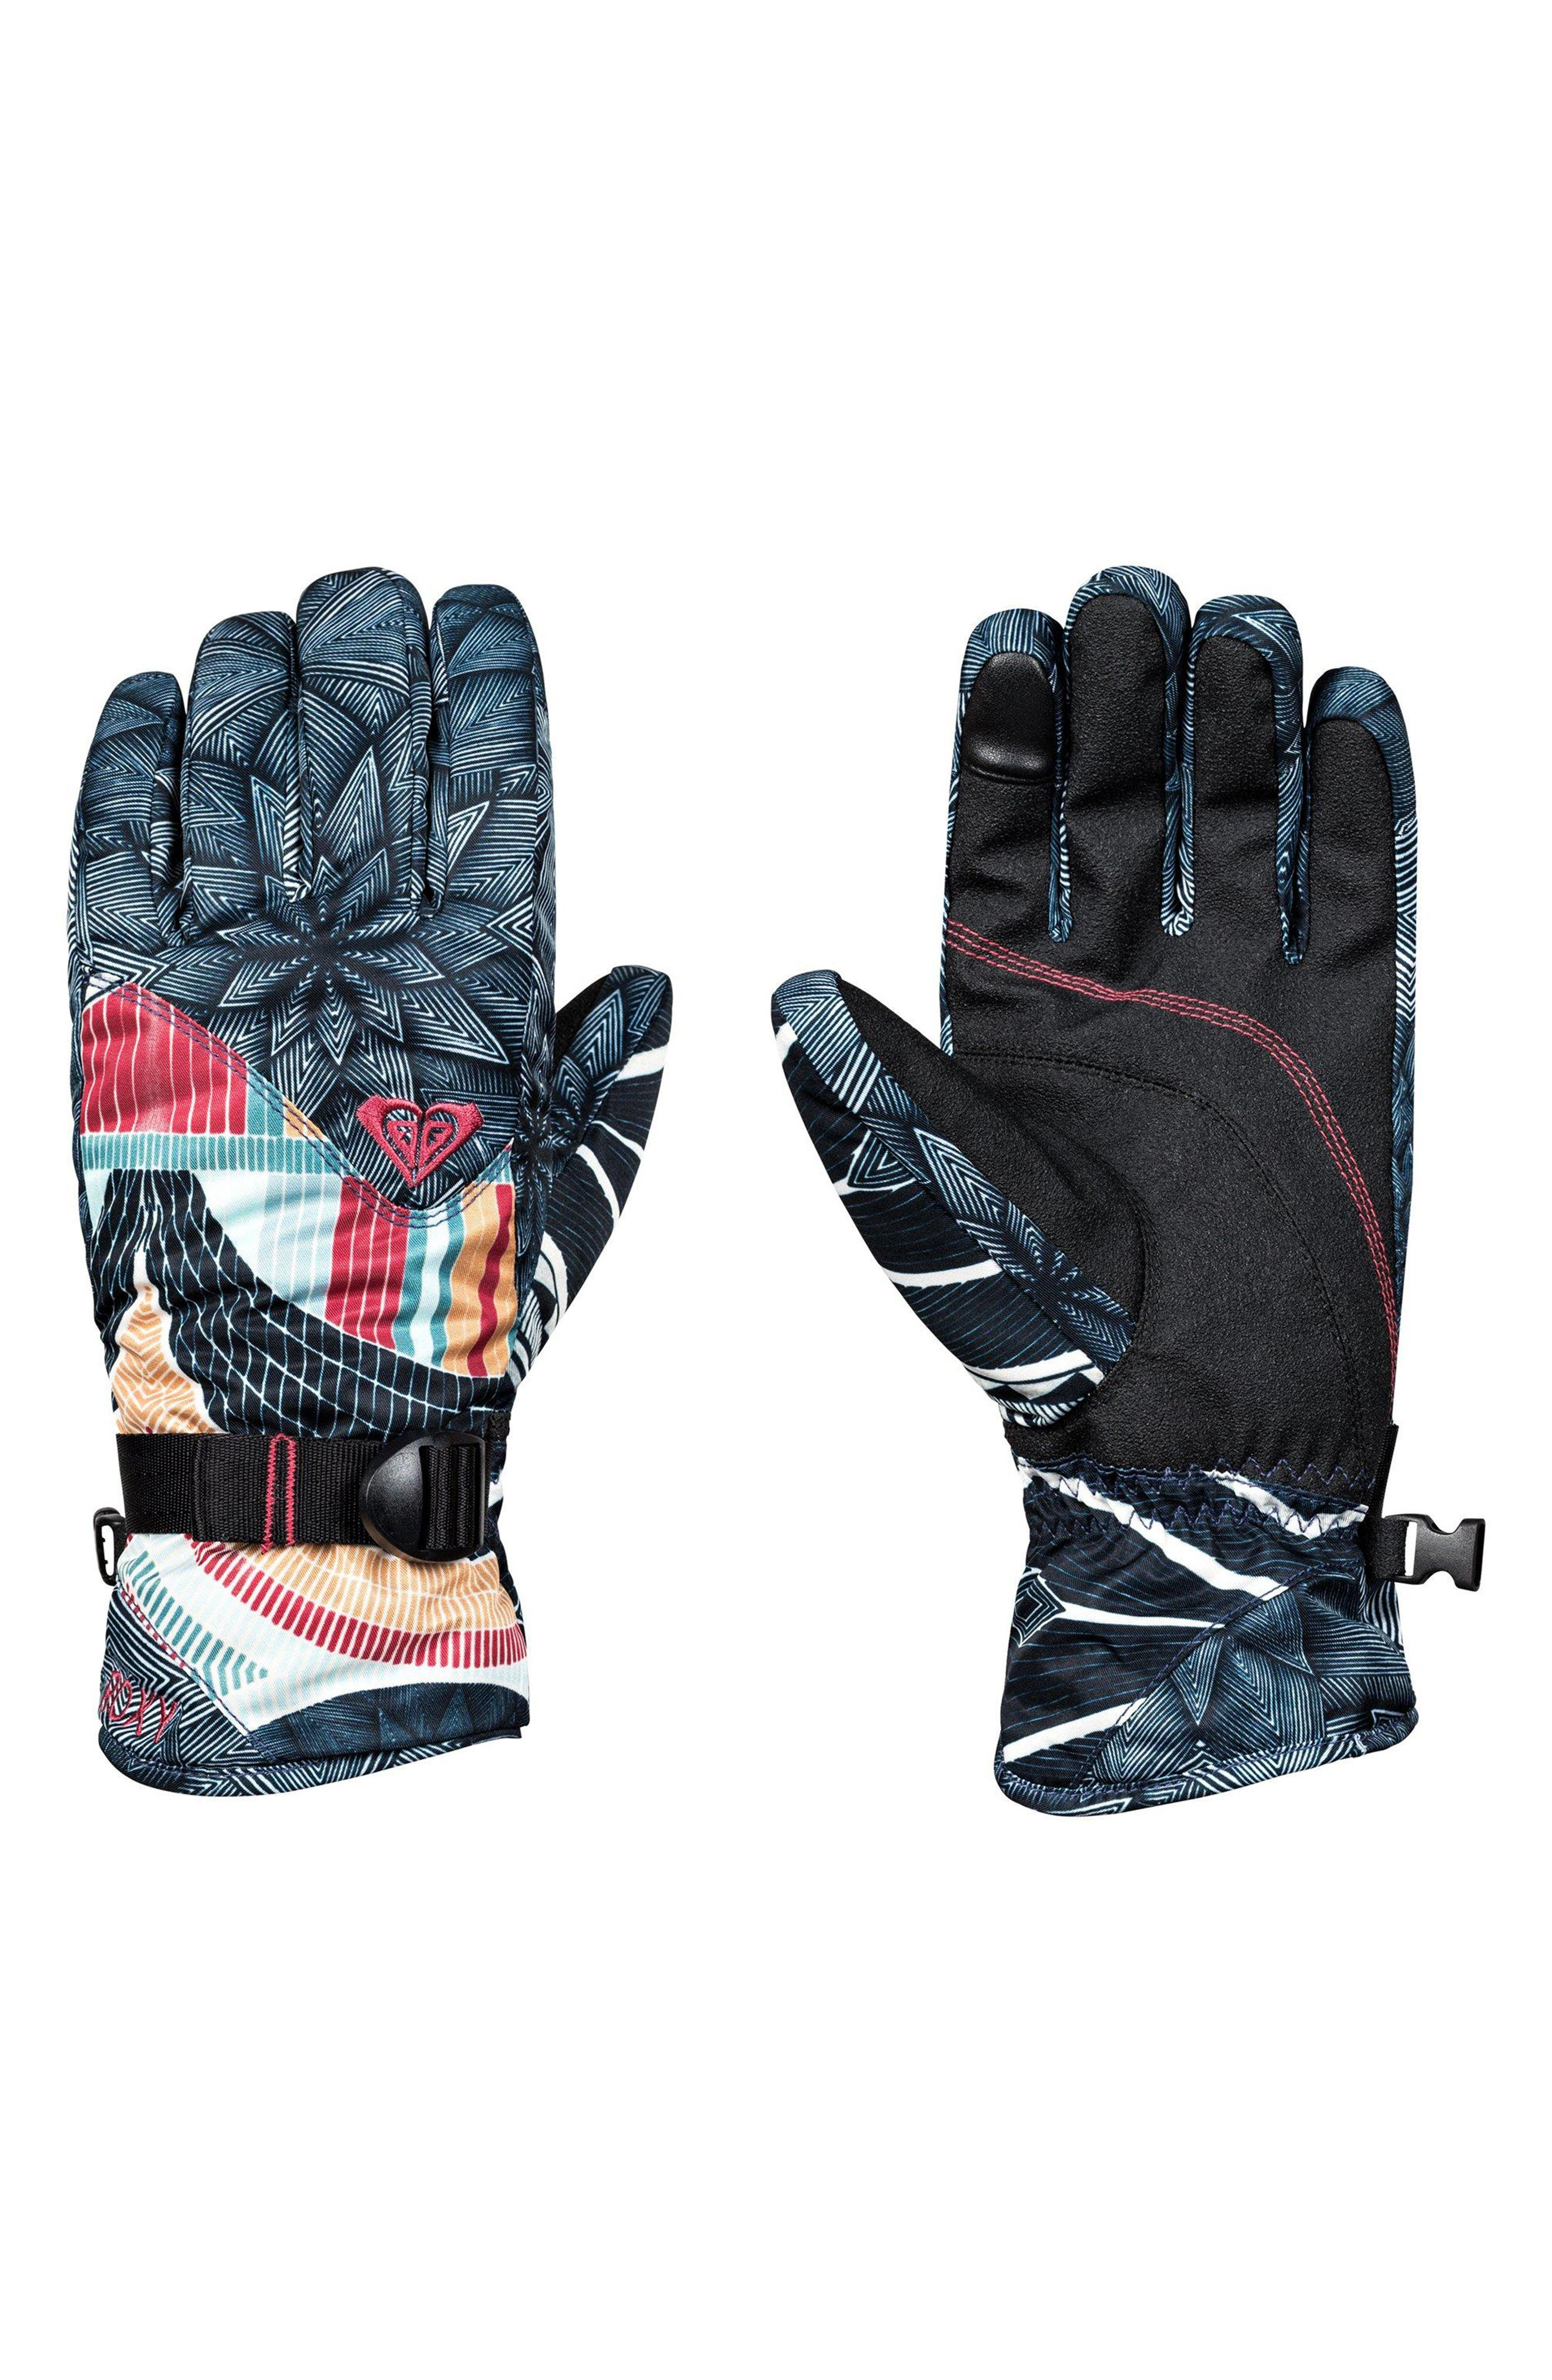 Jetty Print Snow Sport Gloves,                             Main thumbnail 1, color,                             002